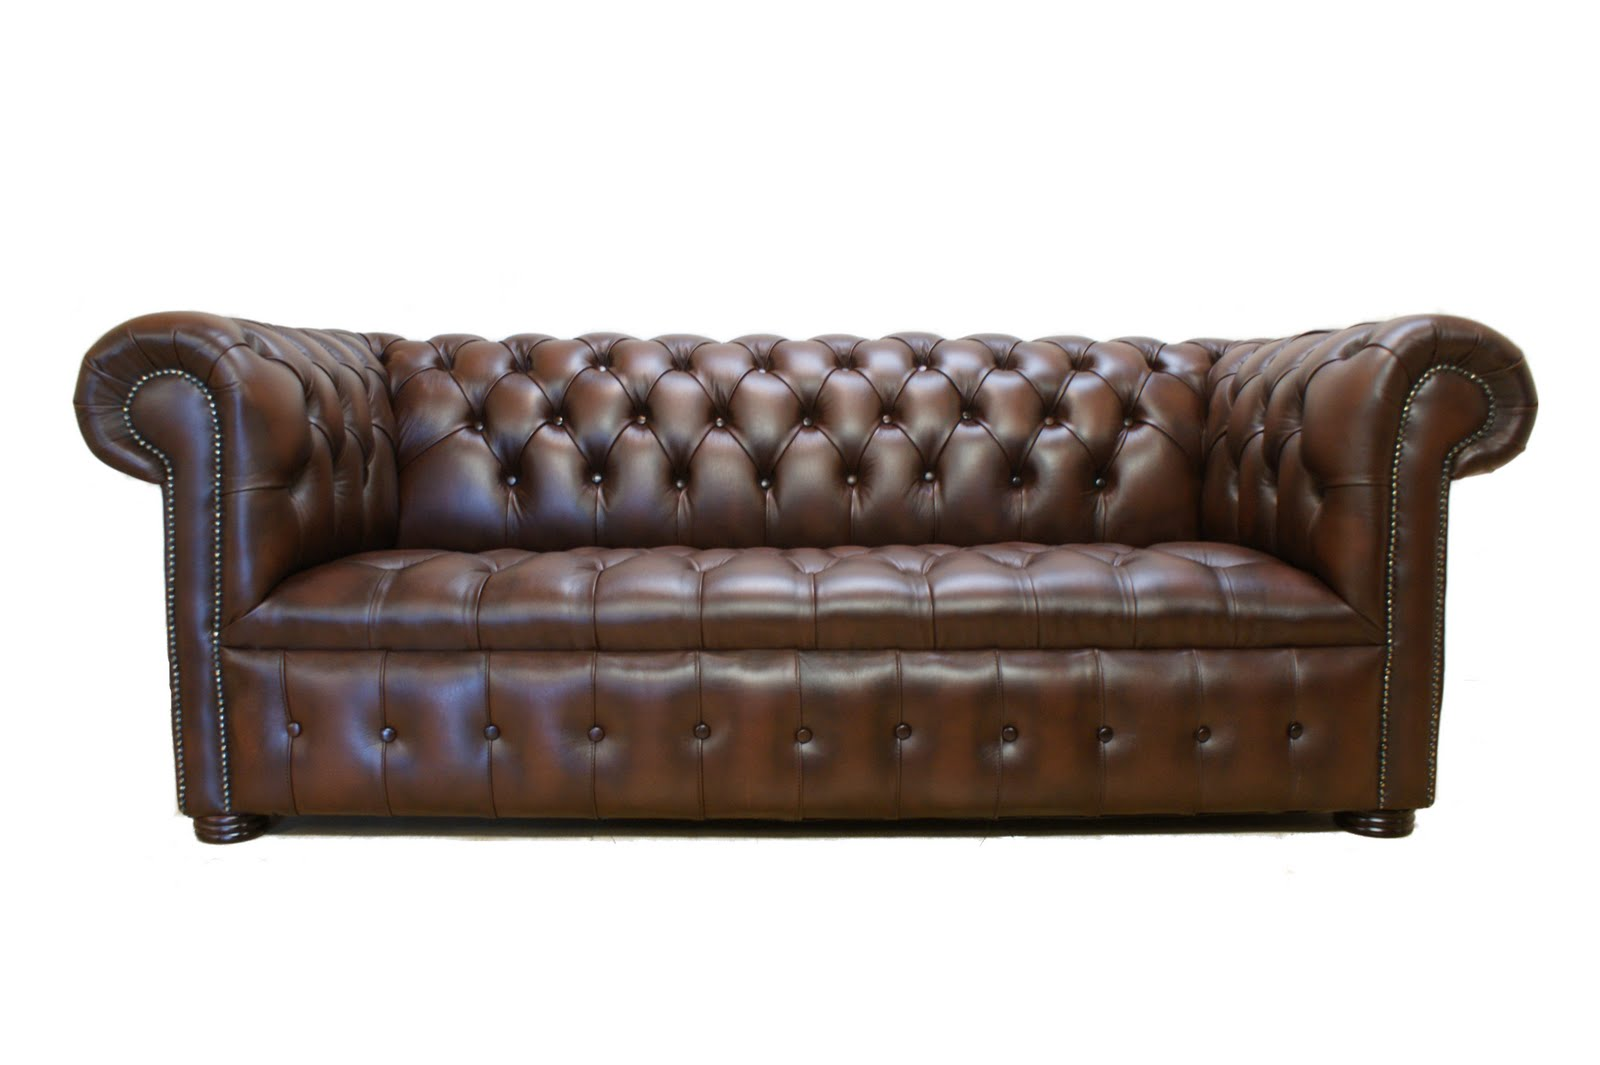 Sofa On Sale Ebay 28 Chesterfield Sofa Ebay Green 3 Seater Chesterfield Sofa Ebay